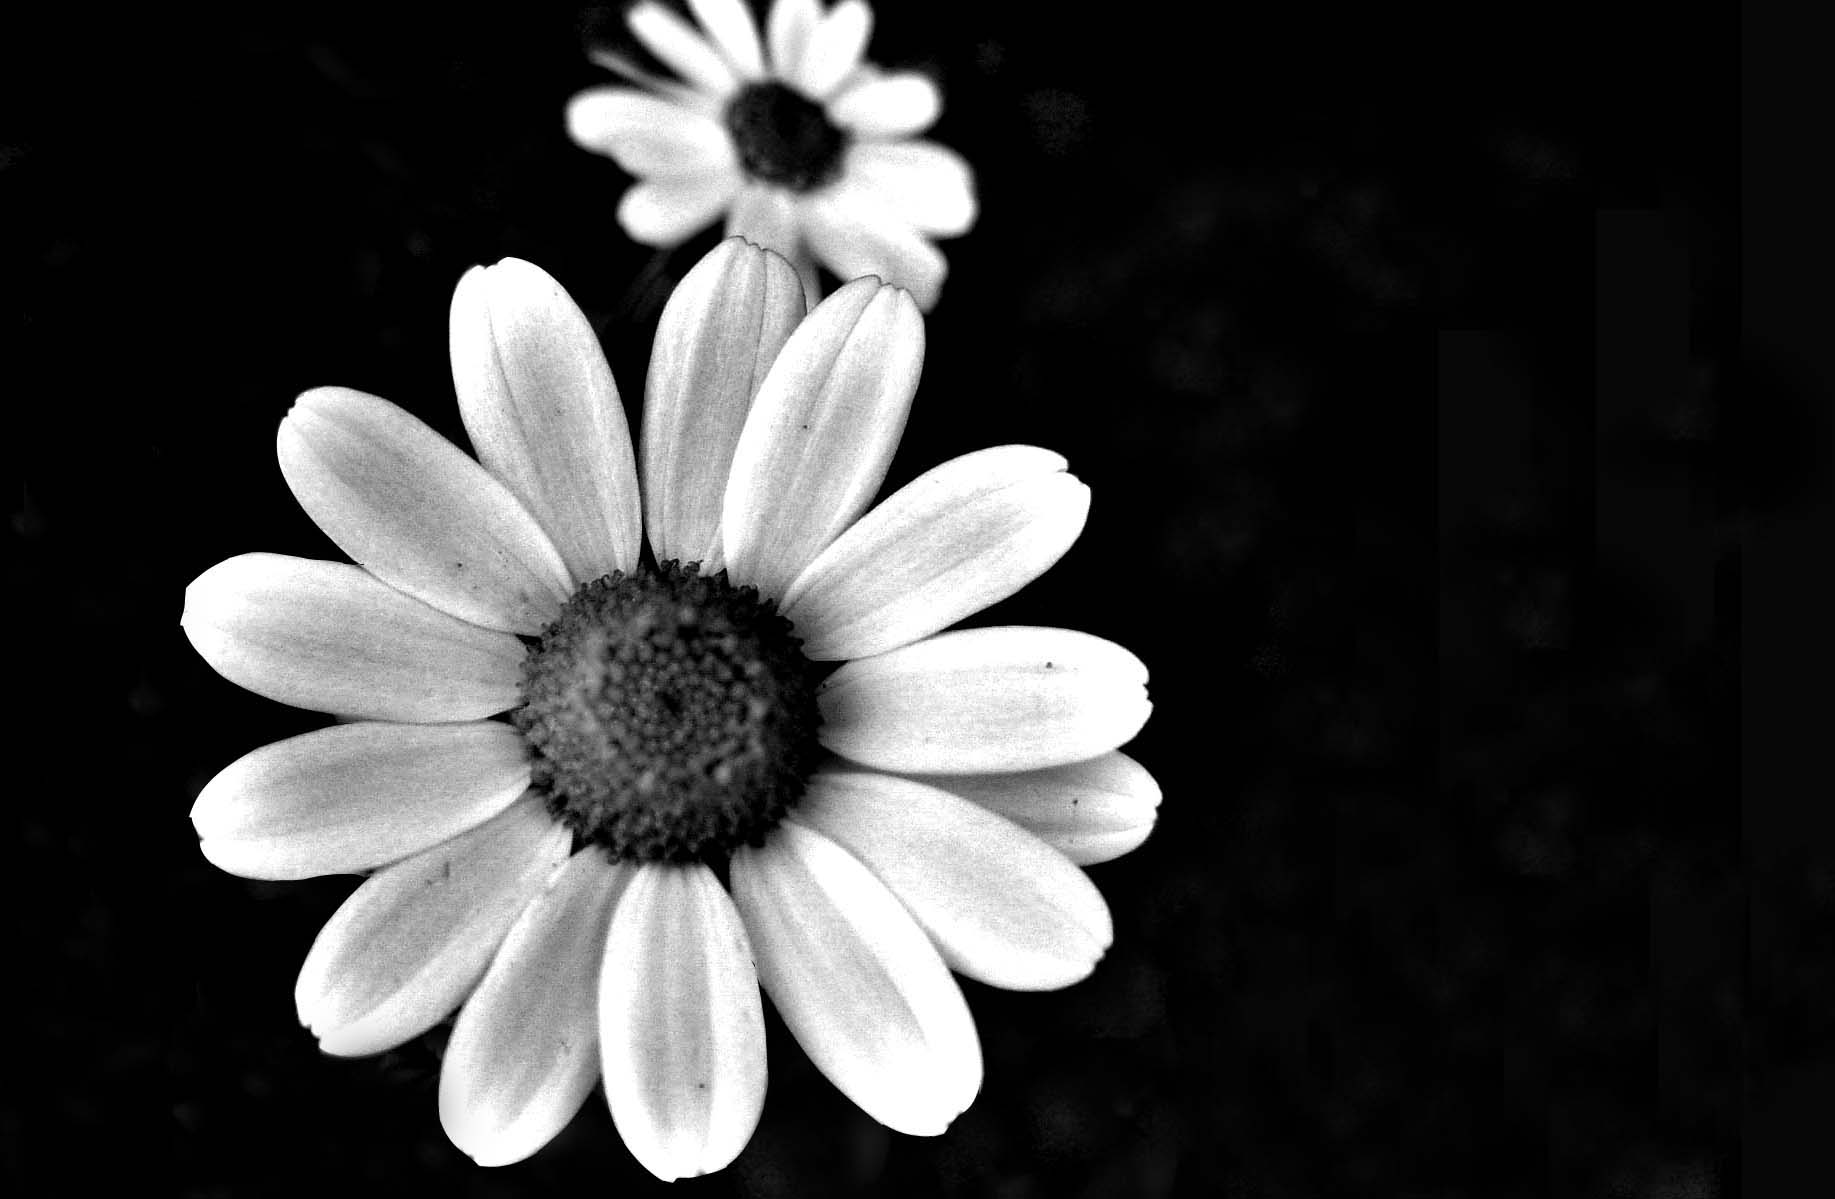 Black and White Flower Wallpaper - WallpaperSafari